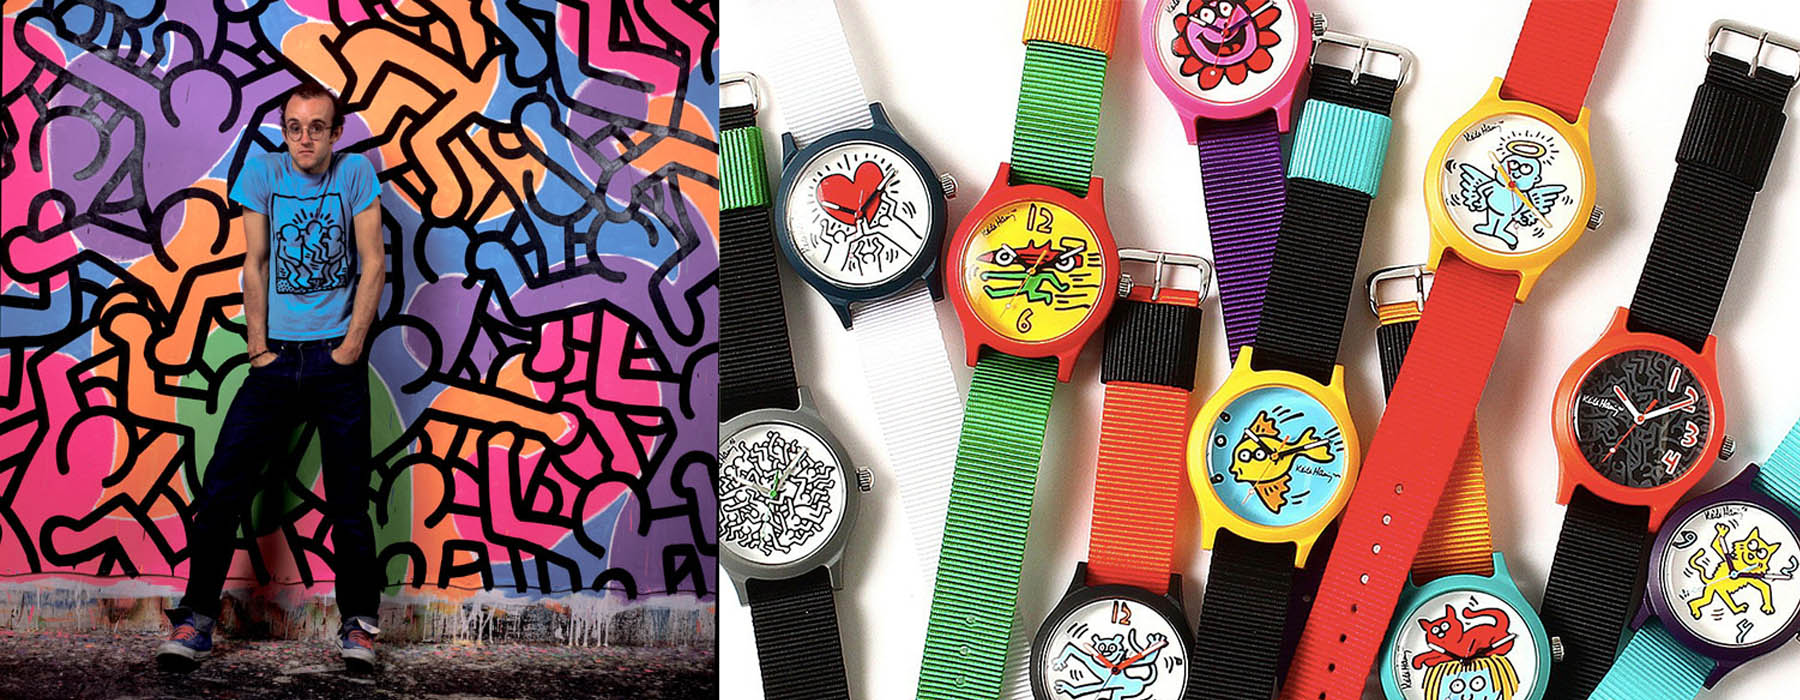 Keith Haring Swatch collaboration